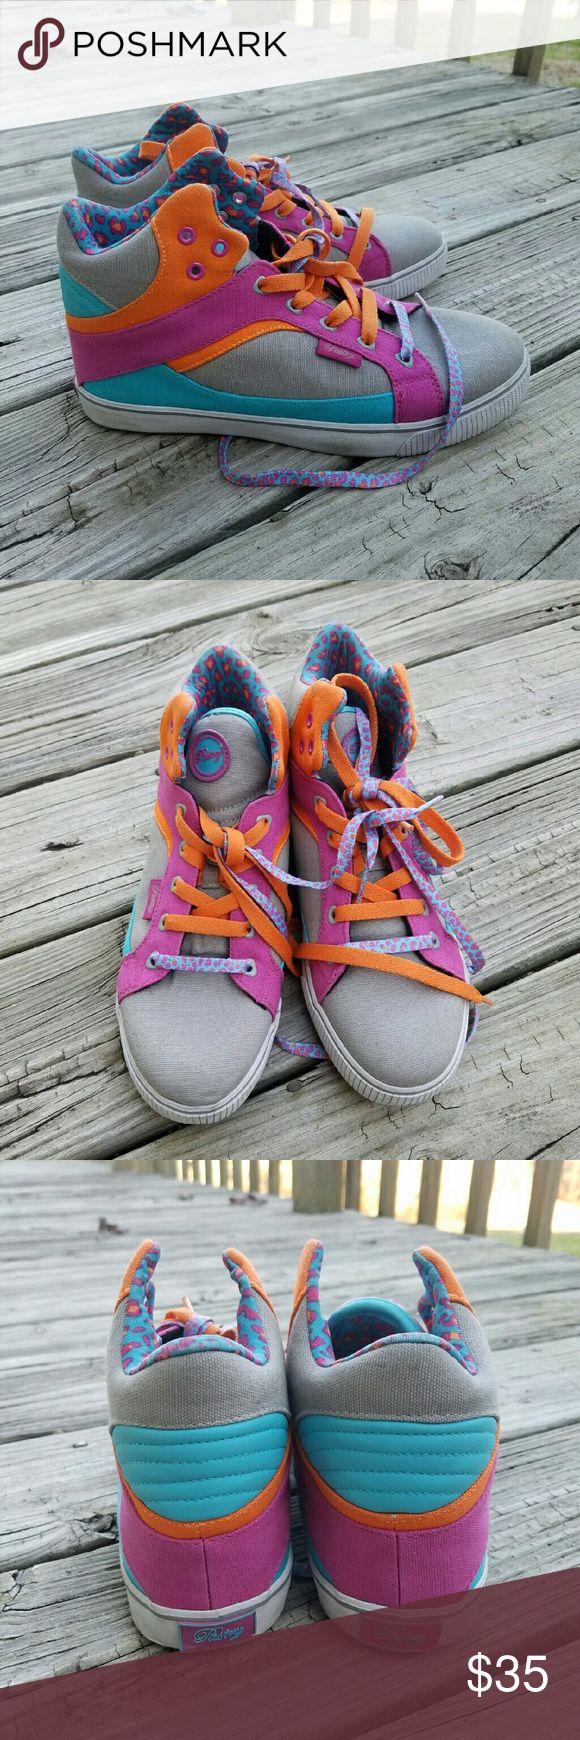 Pastry Tennis Shoes Pastry High top Tennis shoes great to just wear or dance in. Size 8 1/2. Worn maybe 2x. Pastry Shoes Athletic Shoes